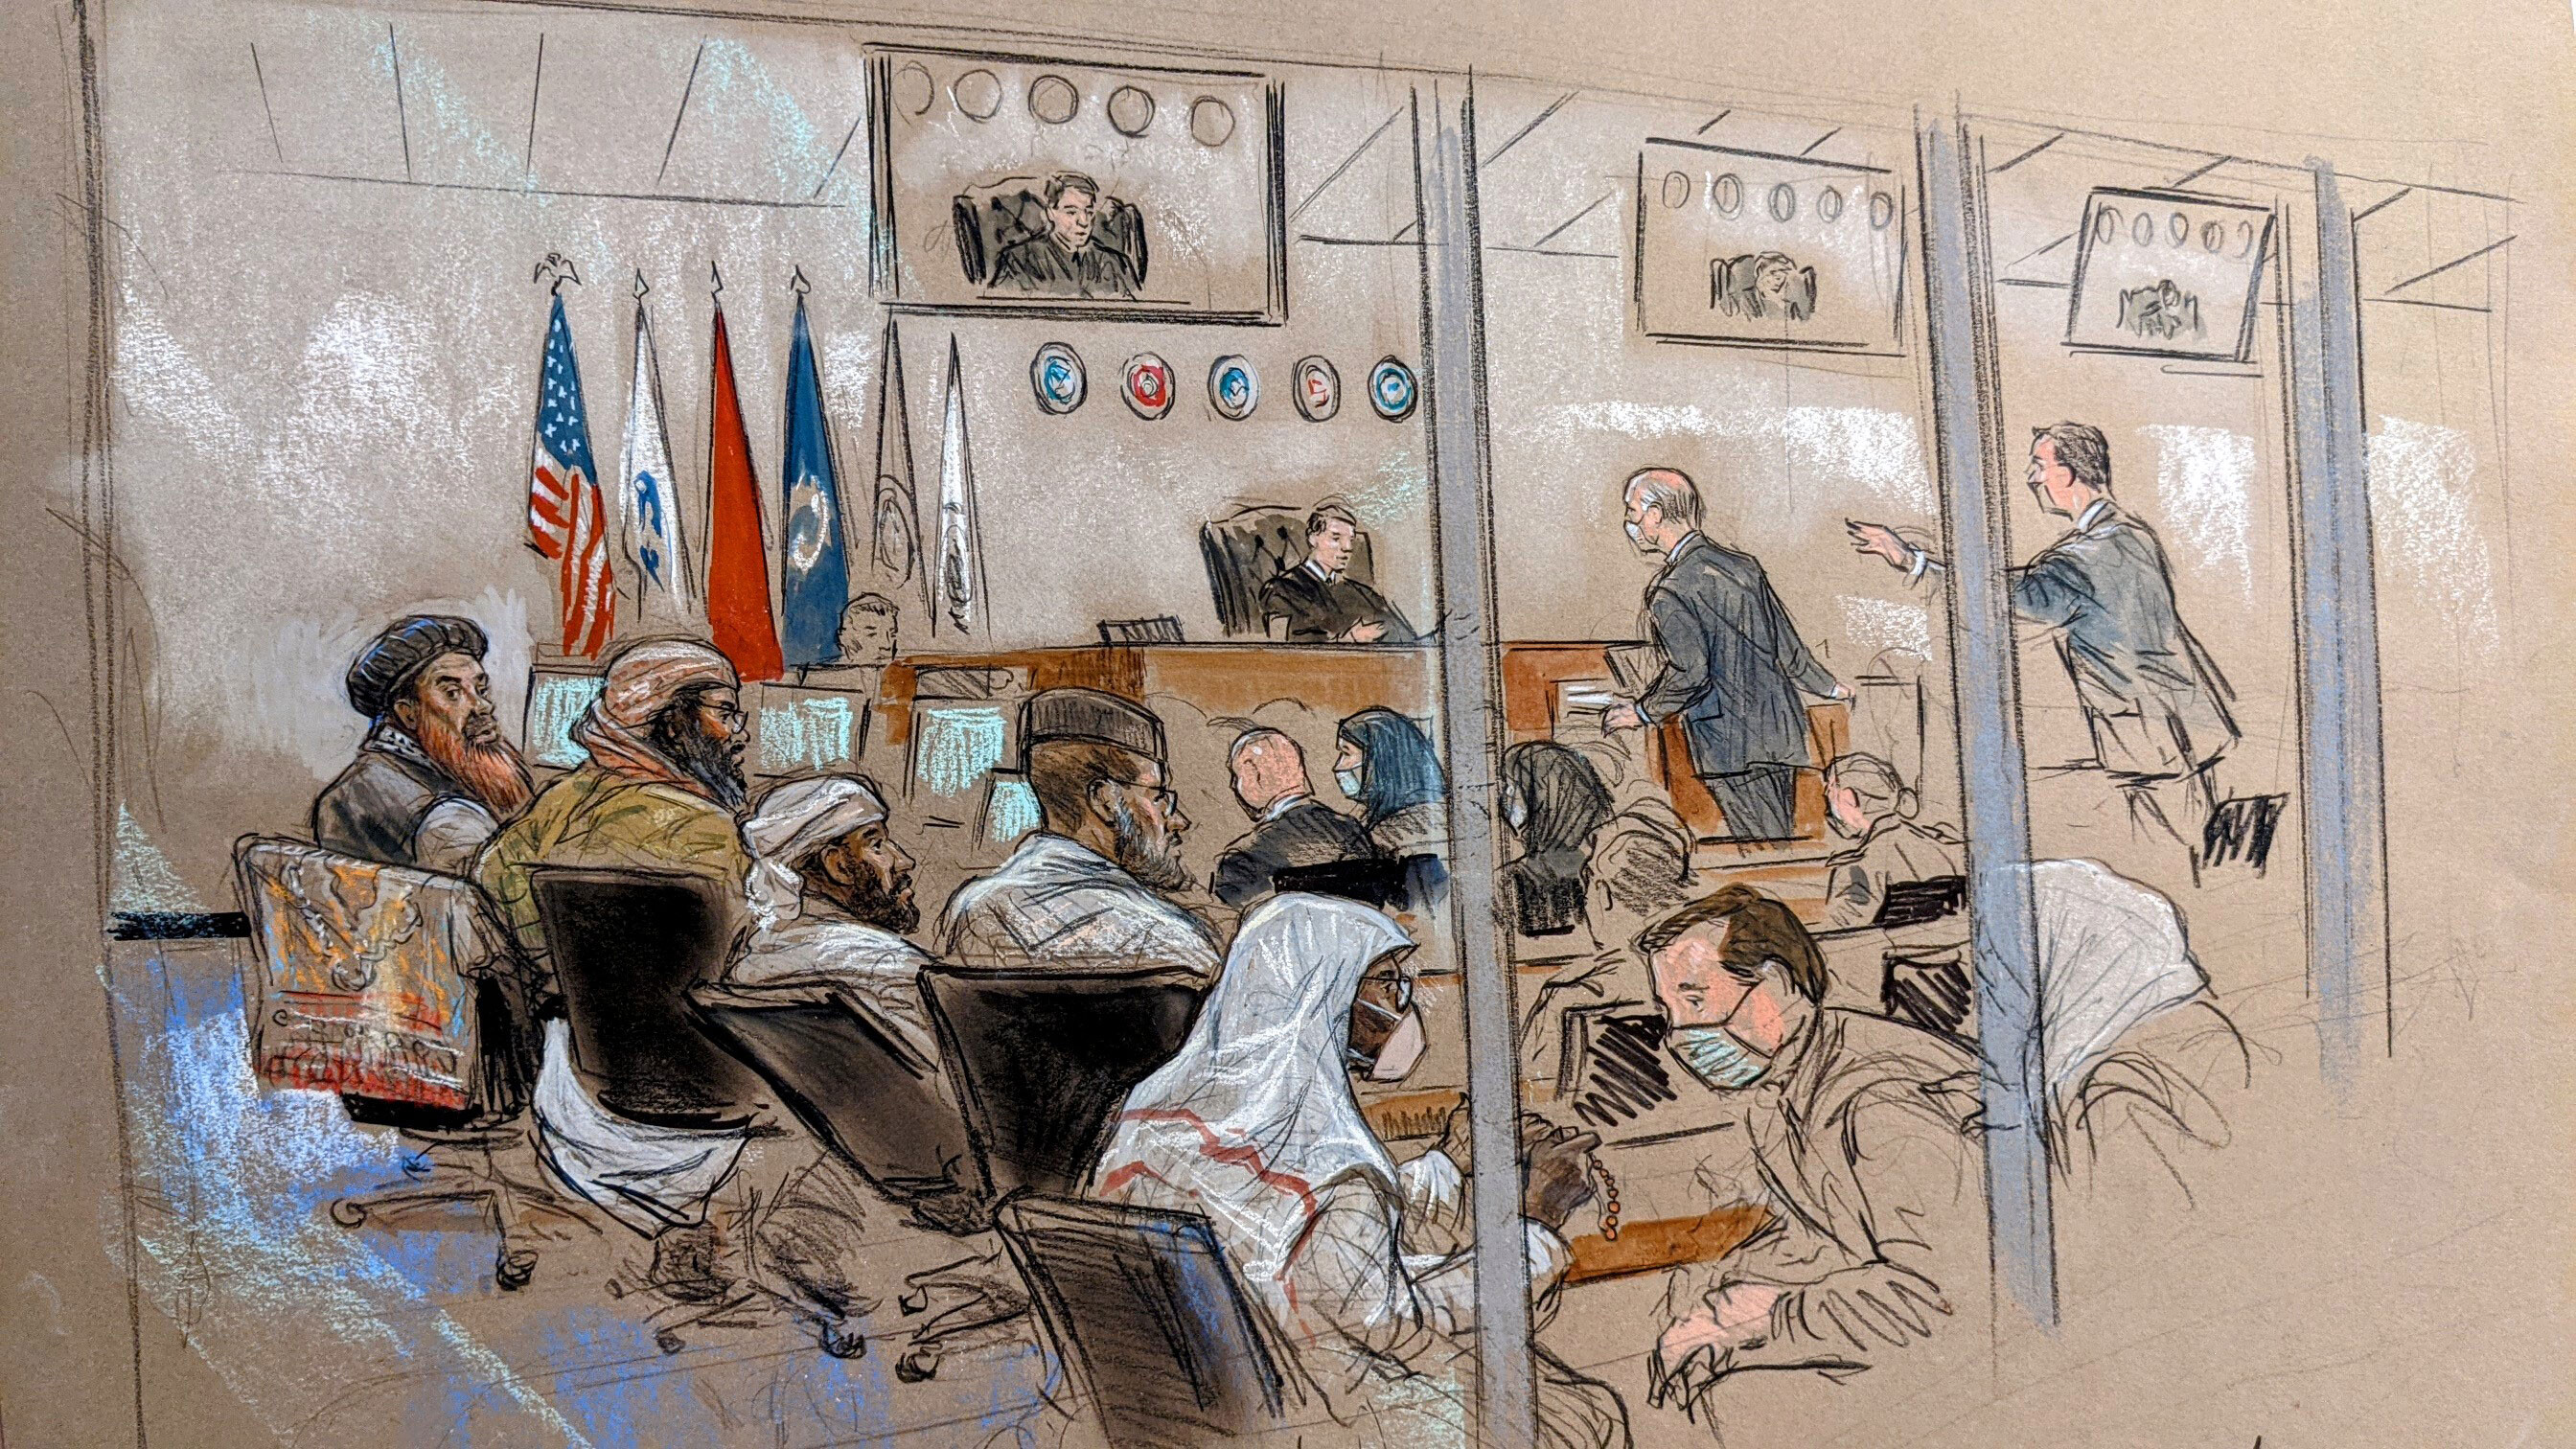 Twenty years later, case of five accused of plotting 9/11 terrorist attacks remains stalled